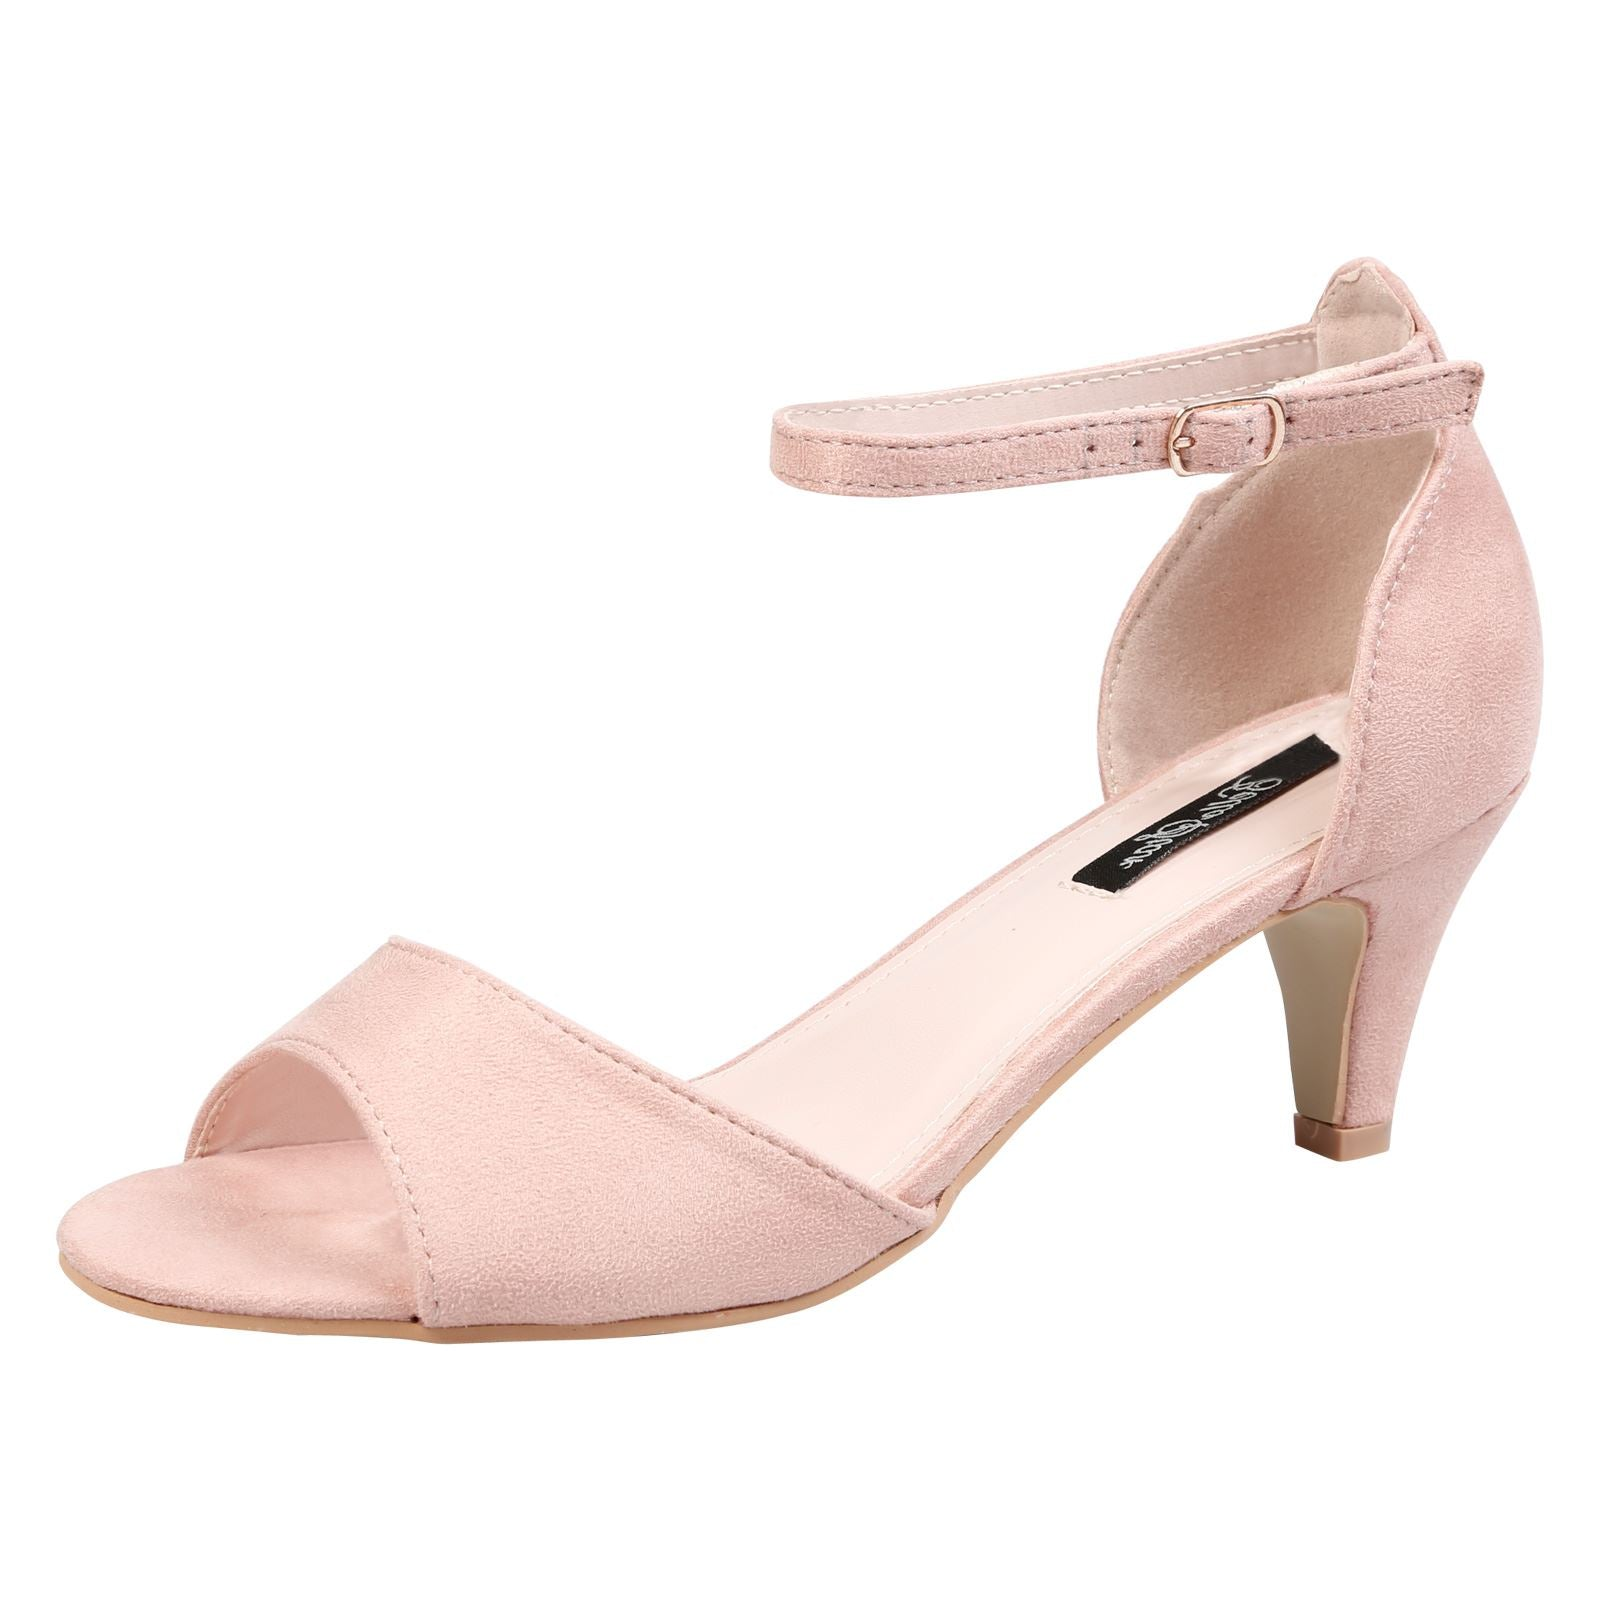 Laurie Low Heel Ankle Strap Sandals in Pink Faux Suede